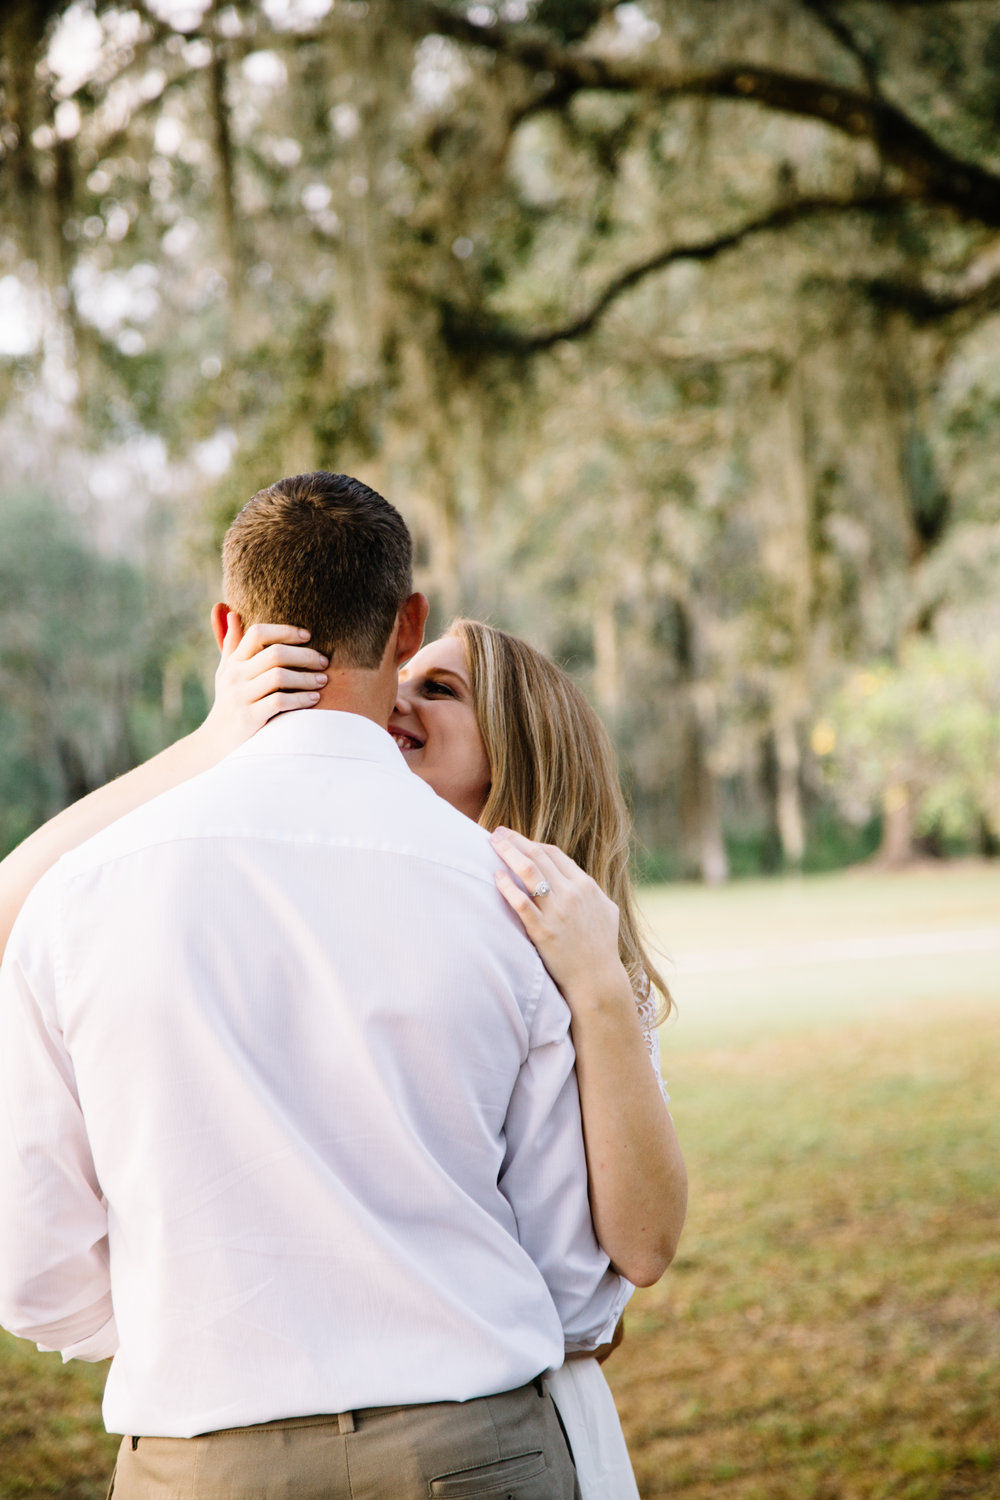 An inside joke between two lovers | Brooksville, Florida